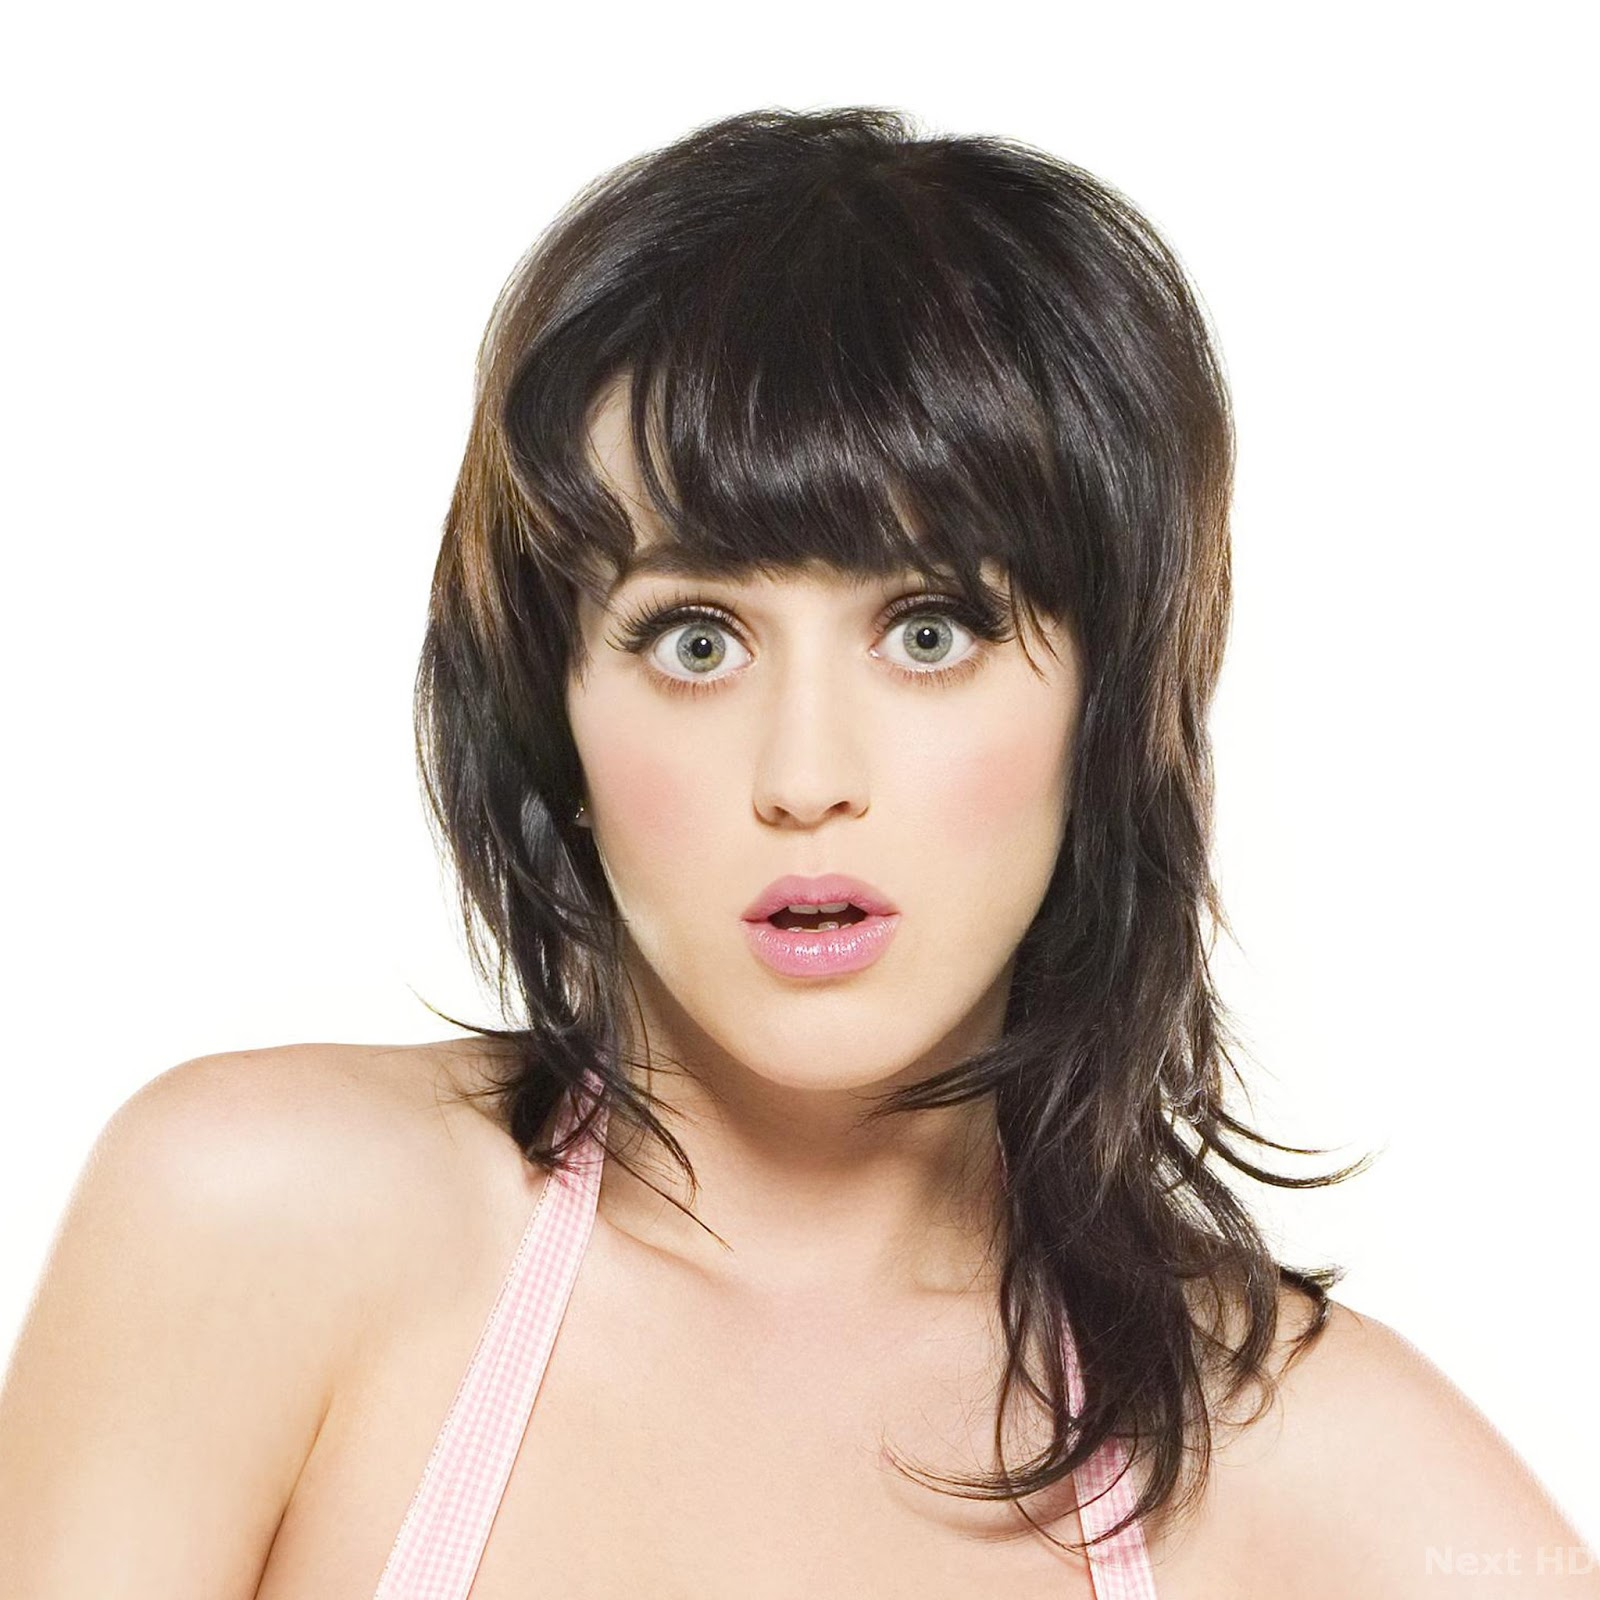 http://4.bp.blogspot.com/-MGb6VCJfn-Y/ULr0wEFc0bI/AAAAAAAABGk/16D7-mGsvoA/s1600/Katy-Perry-New-iPad-HD-Wallpapers.jpg